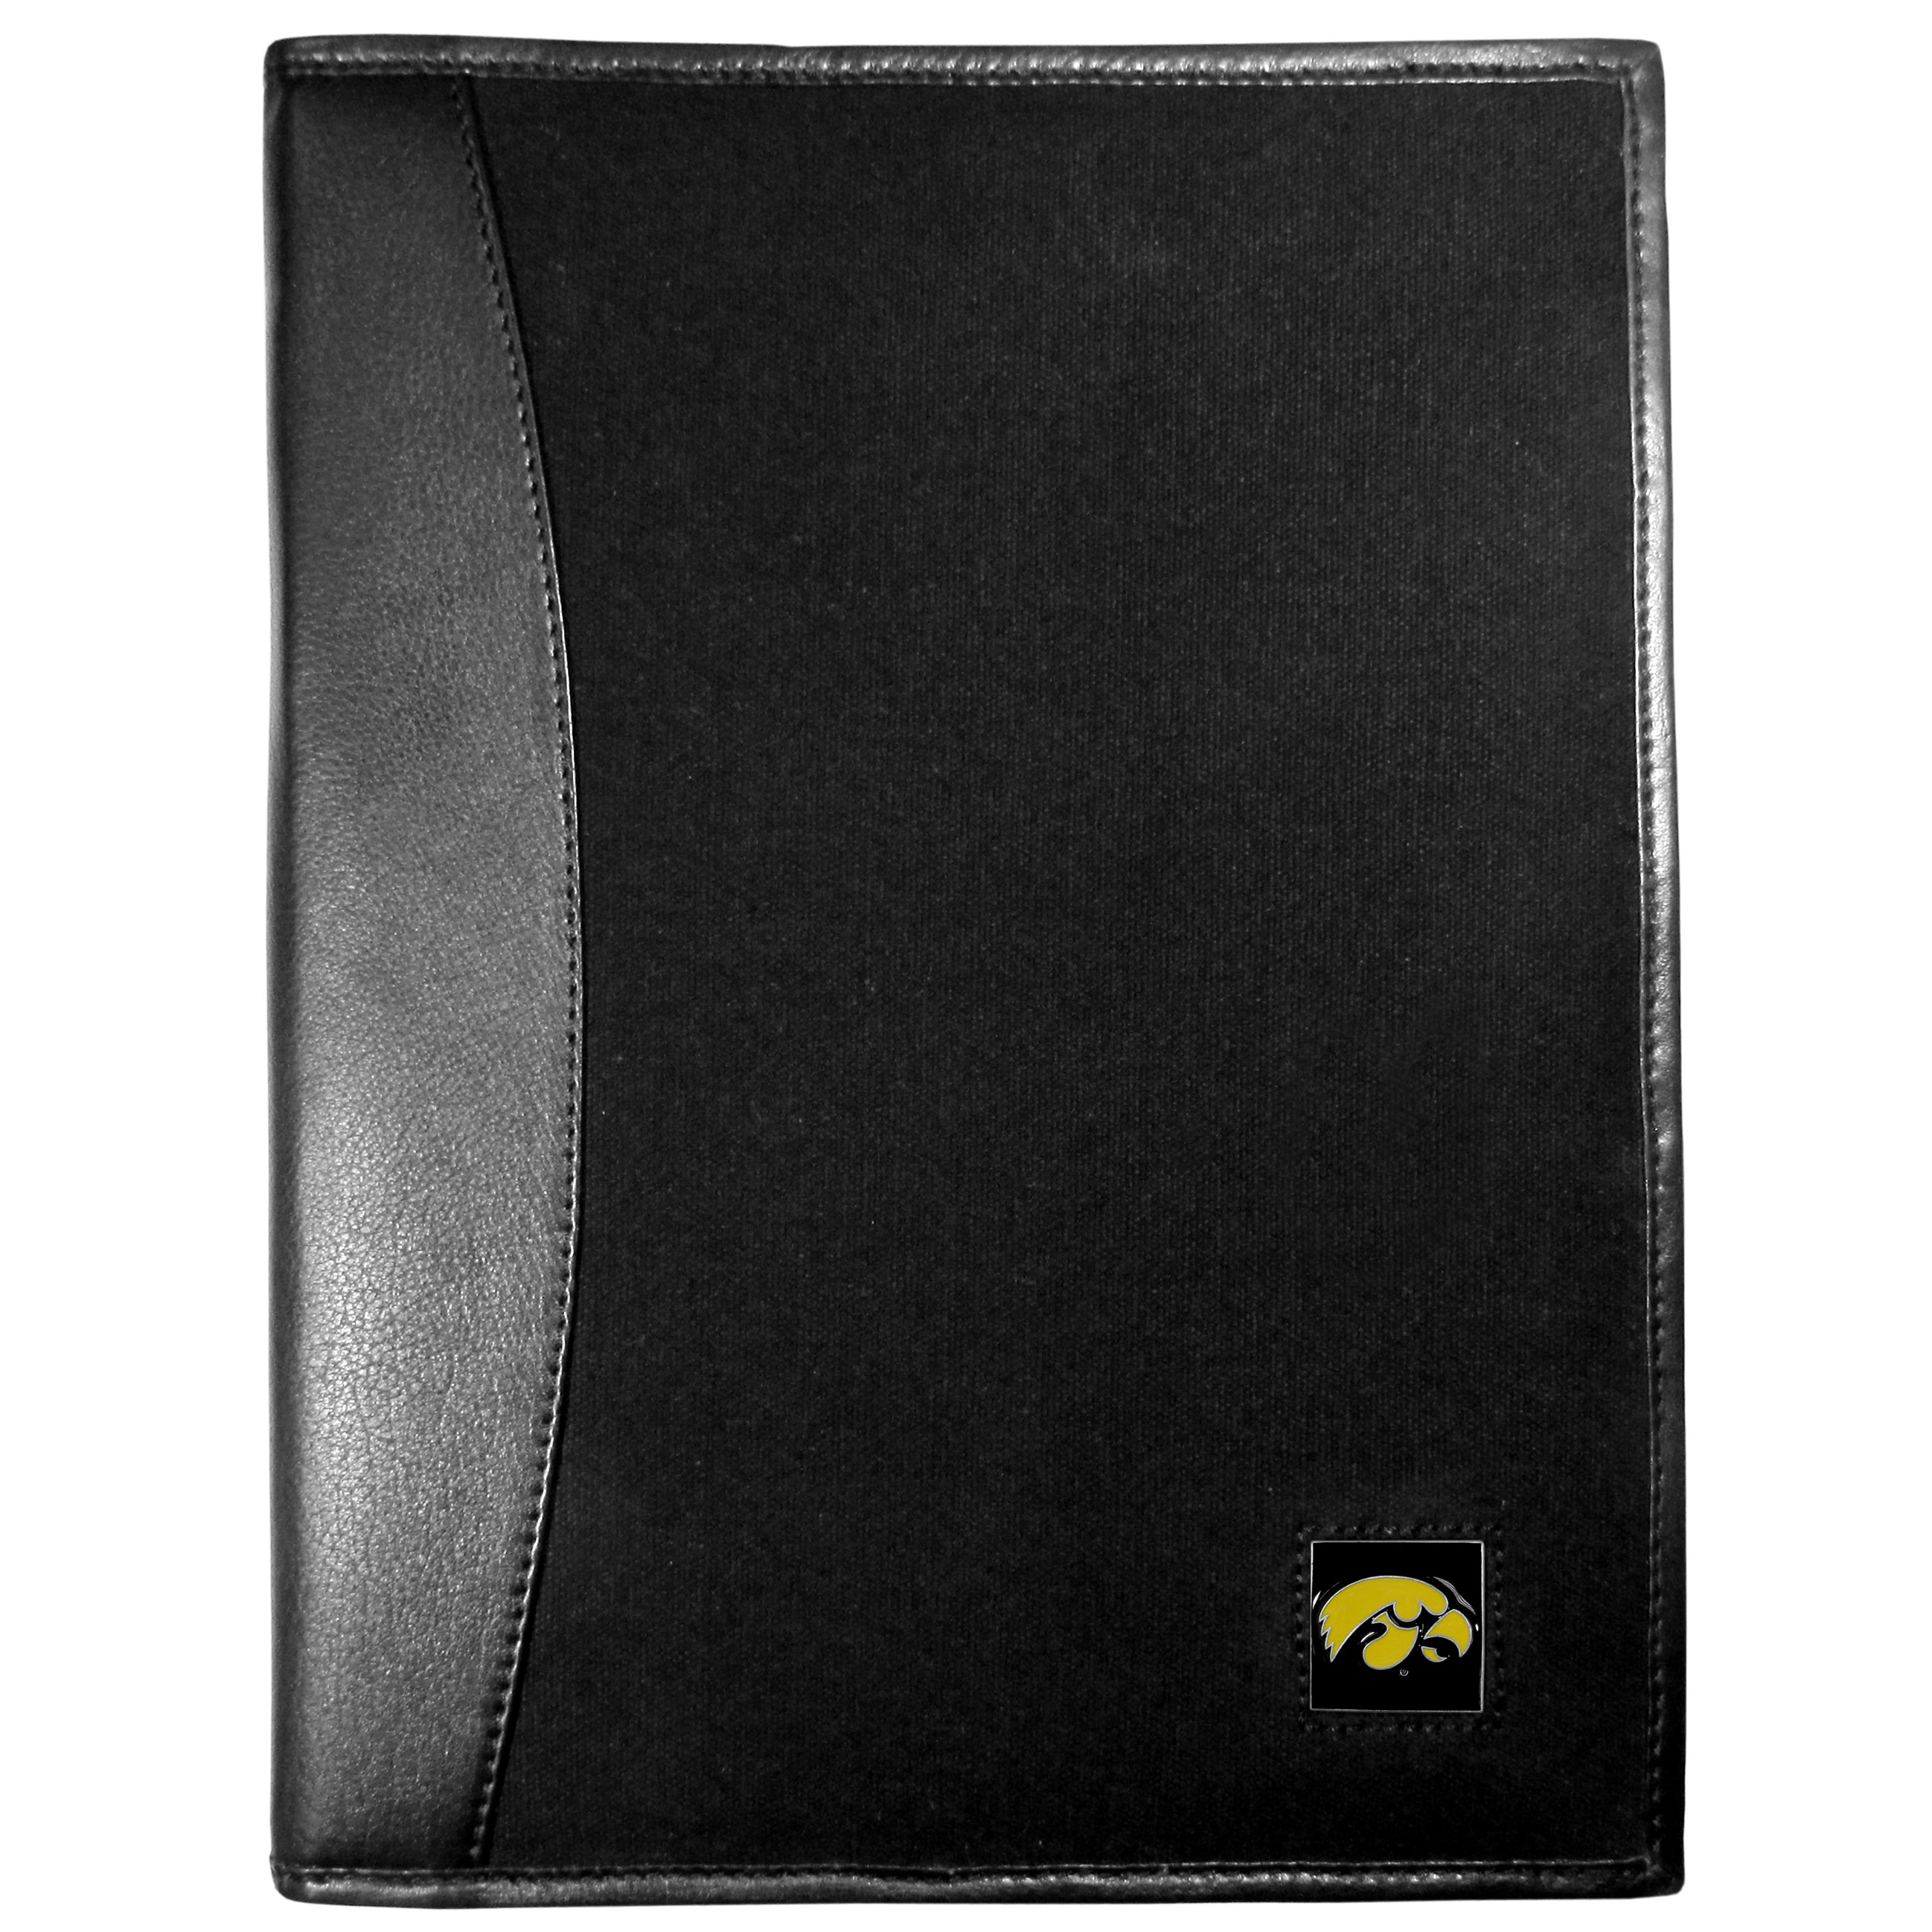 Iowa Hawkeyes Leather and Canvas Padfolio - Our leather and canvas padfolio perfectly blends form and function. The attractive portfolio is bound in fine grain leather with an attractive canvas finish and the interior is a soft nylon. This high quality business accessory also features a fully cast metal Iowa Hawkeyes emblem that is subtly set in the corner of the organizer. It is packed with features like 6 card slots for badges, business cards, hotel keys or credit cards and ID with a large pocket for loose papers and a writing tablet slot making it a must-have for the professional on the go.